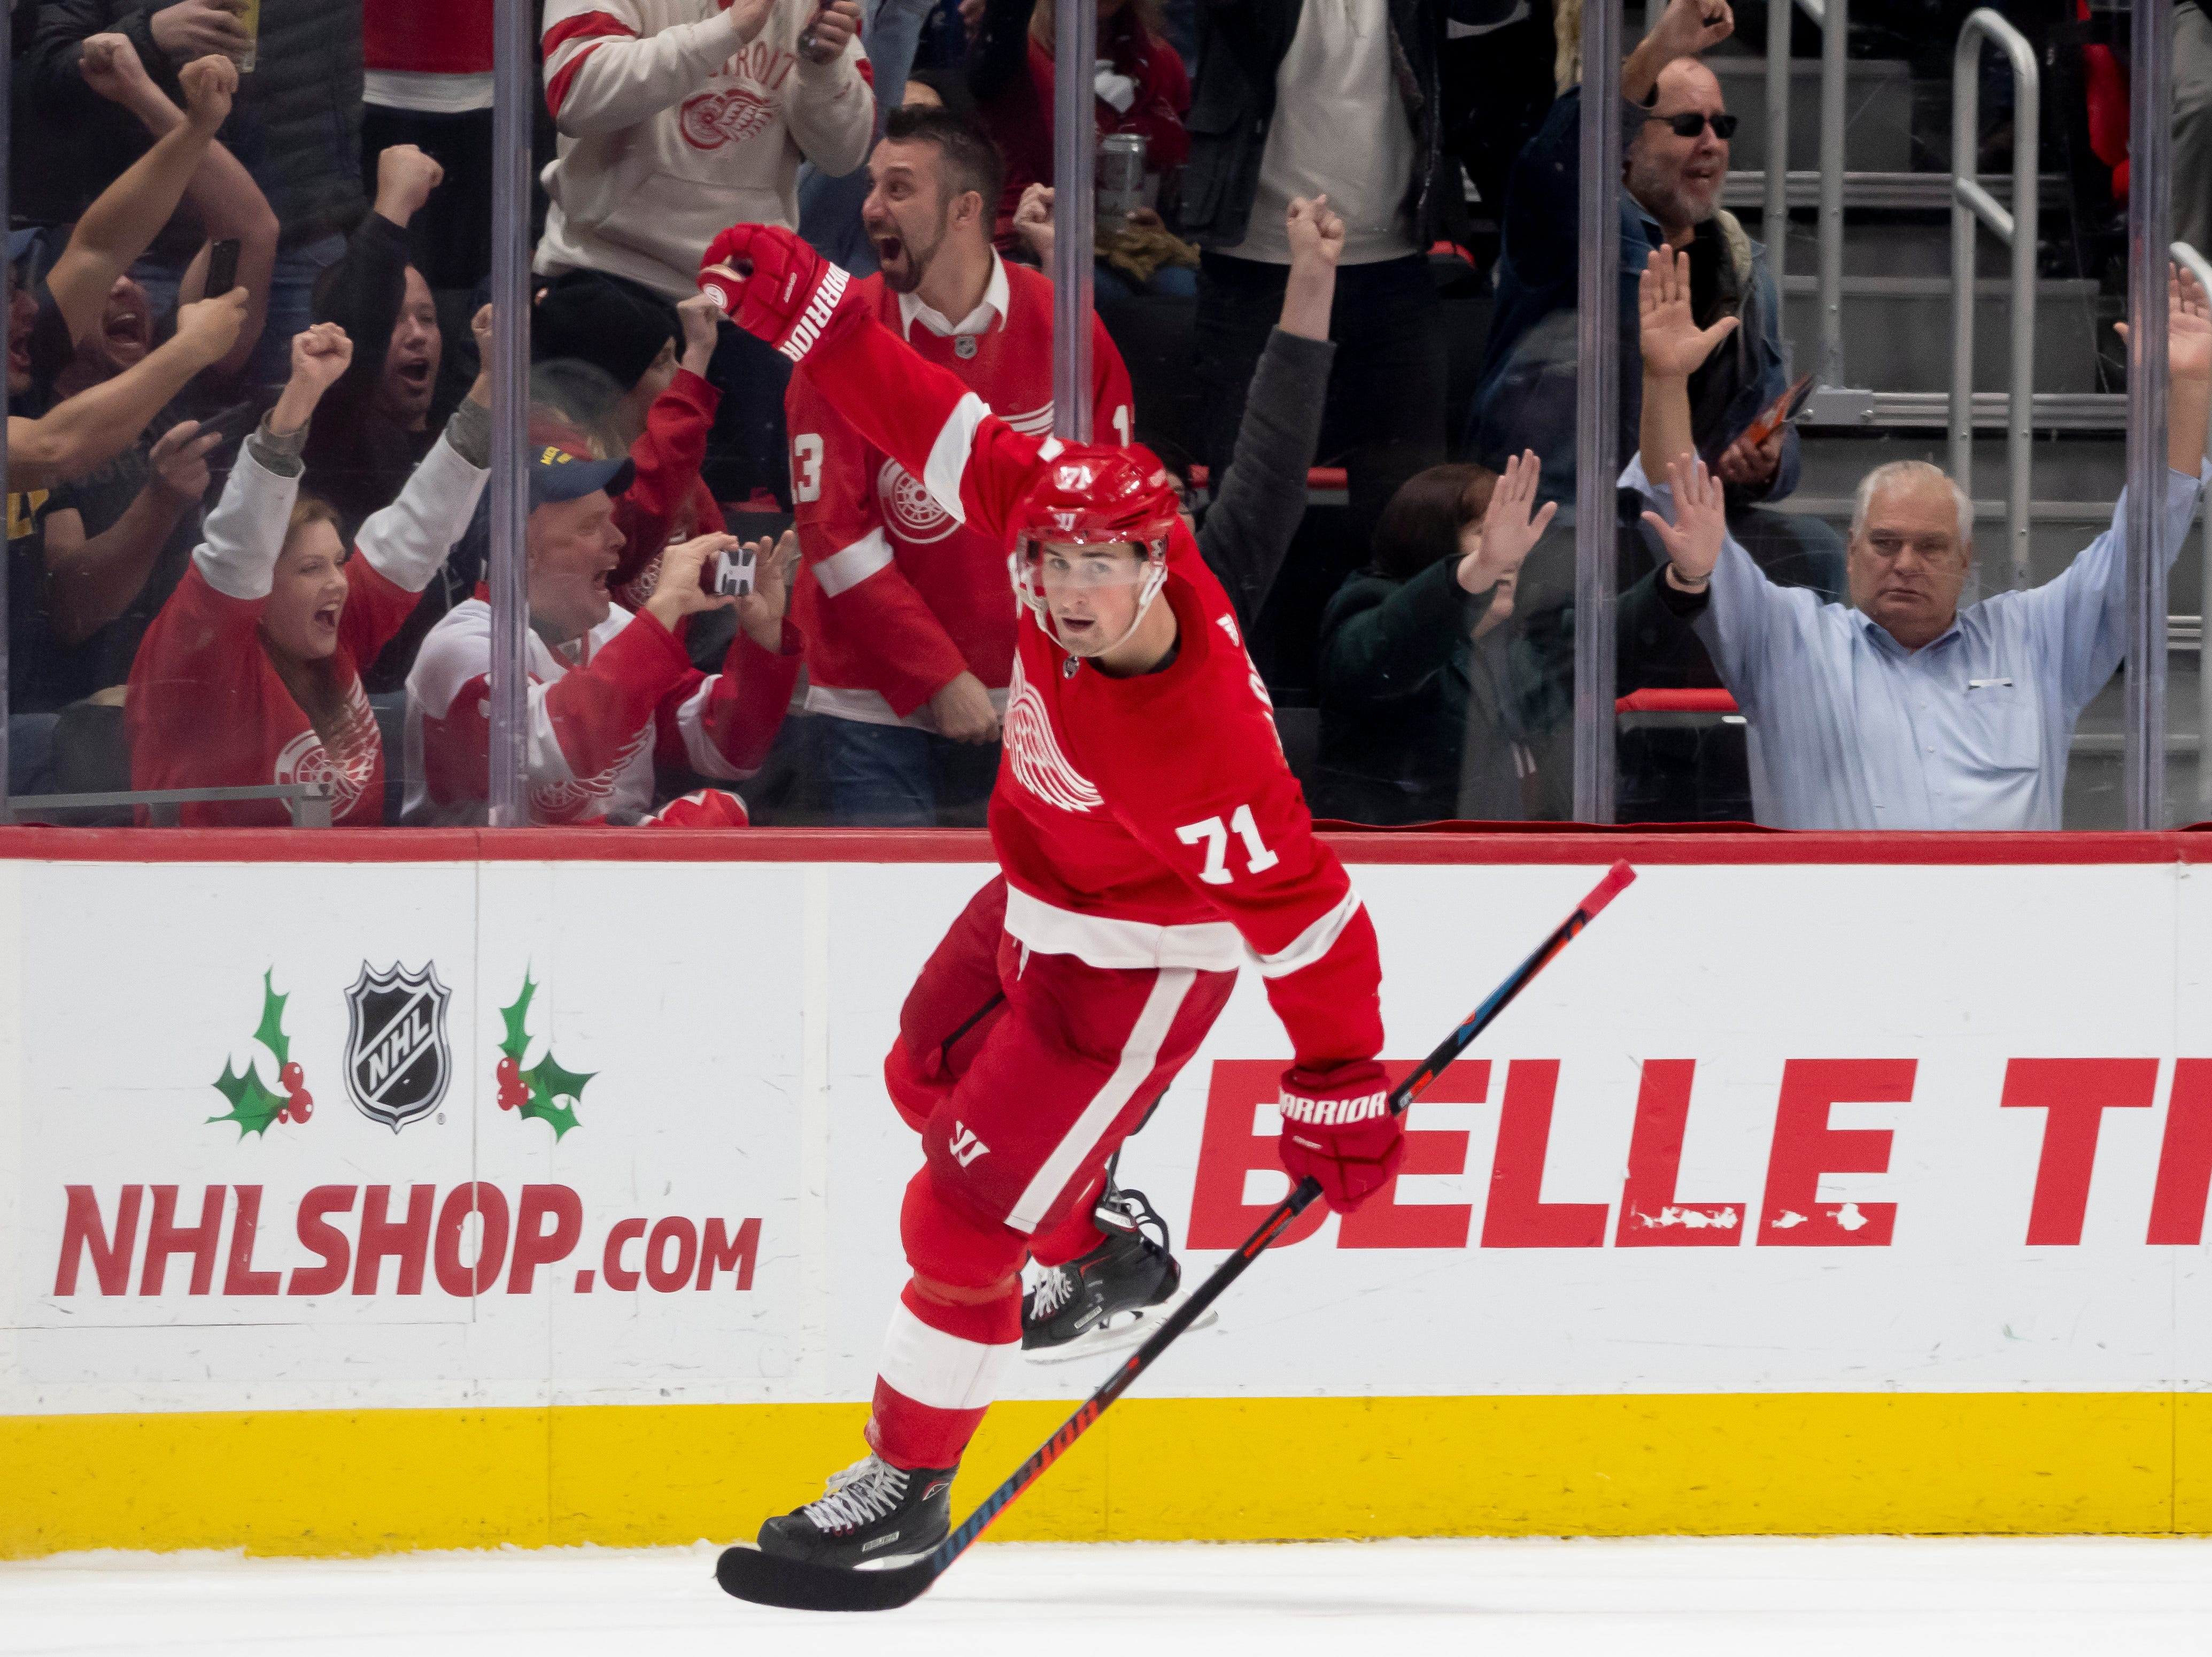 Detroit center Dylan Larkin celebrates after scoring in the second period.             Photos are of the Detroit Red Wings vs. the Los Angeles Kings, at Little Caesars Arena, in Detroit, December 10, 2018.  (David Guralnick / The Detroit News)